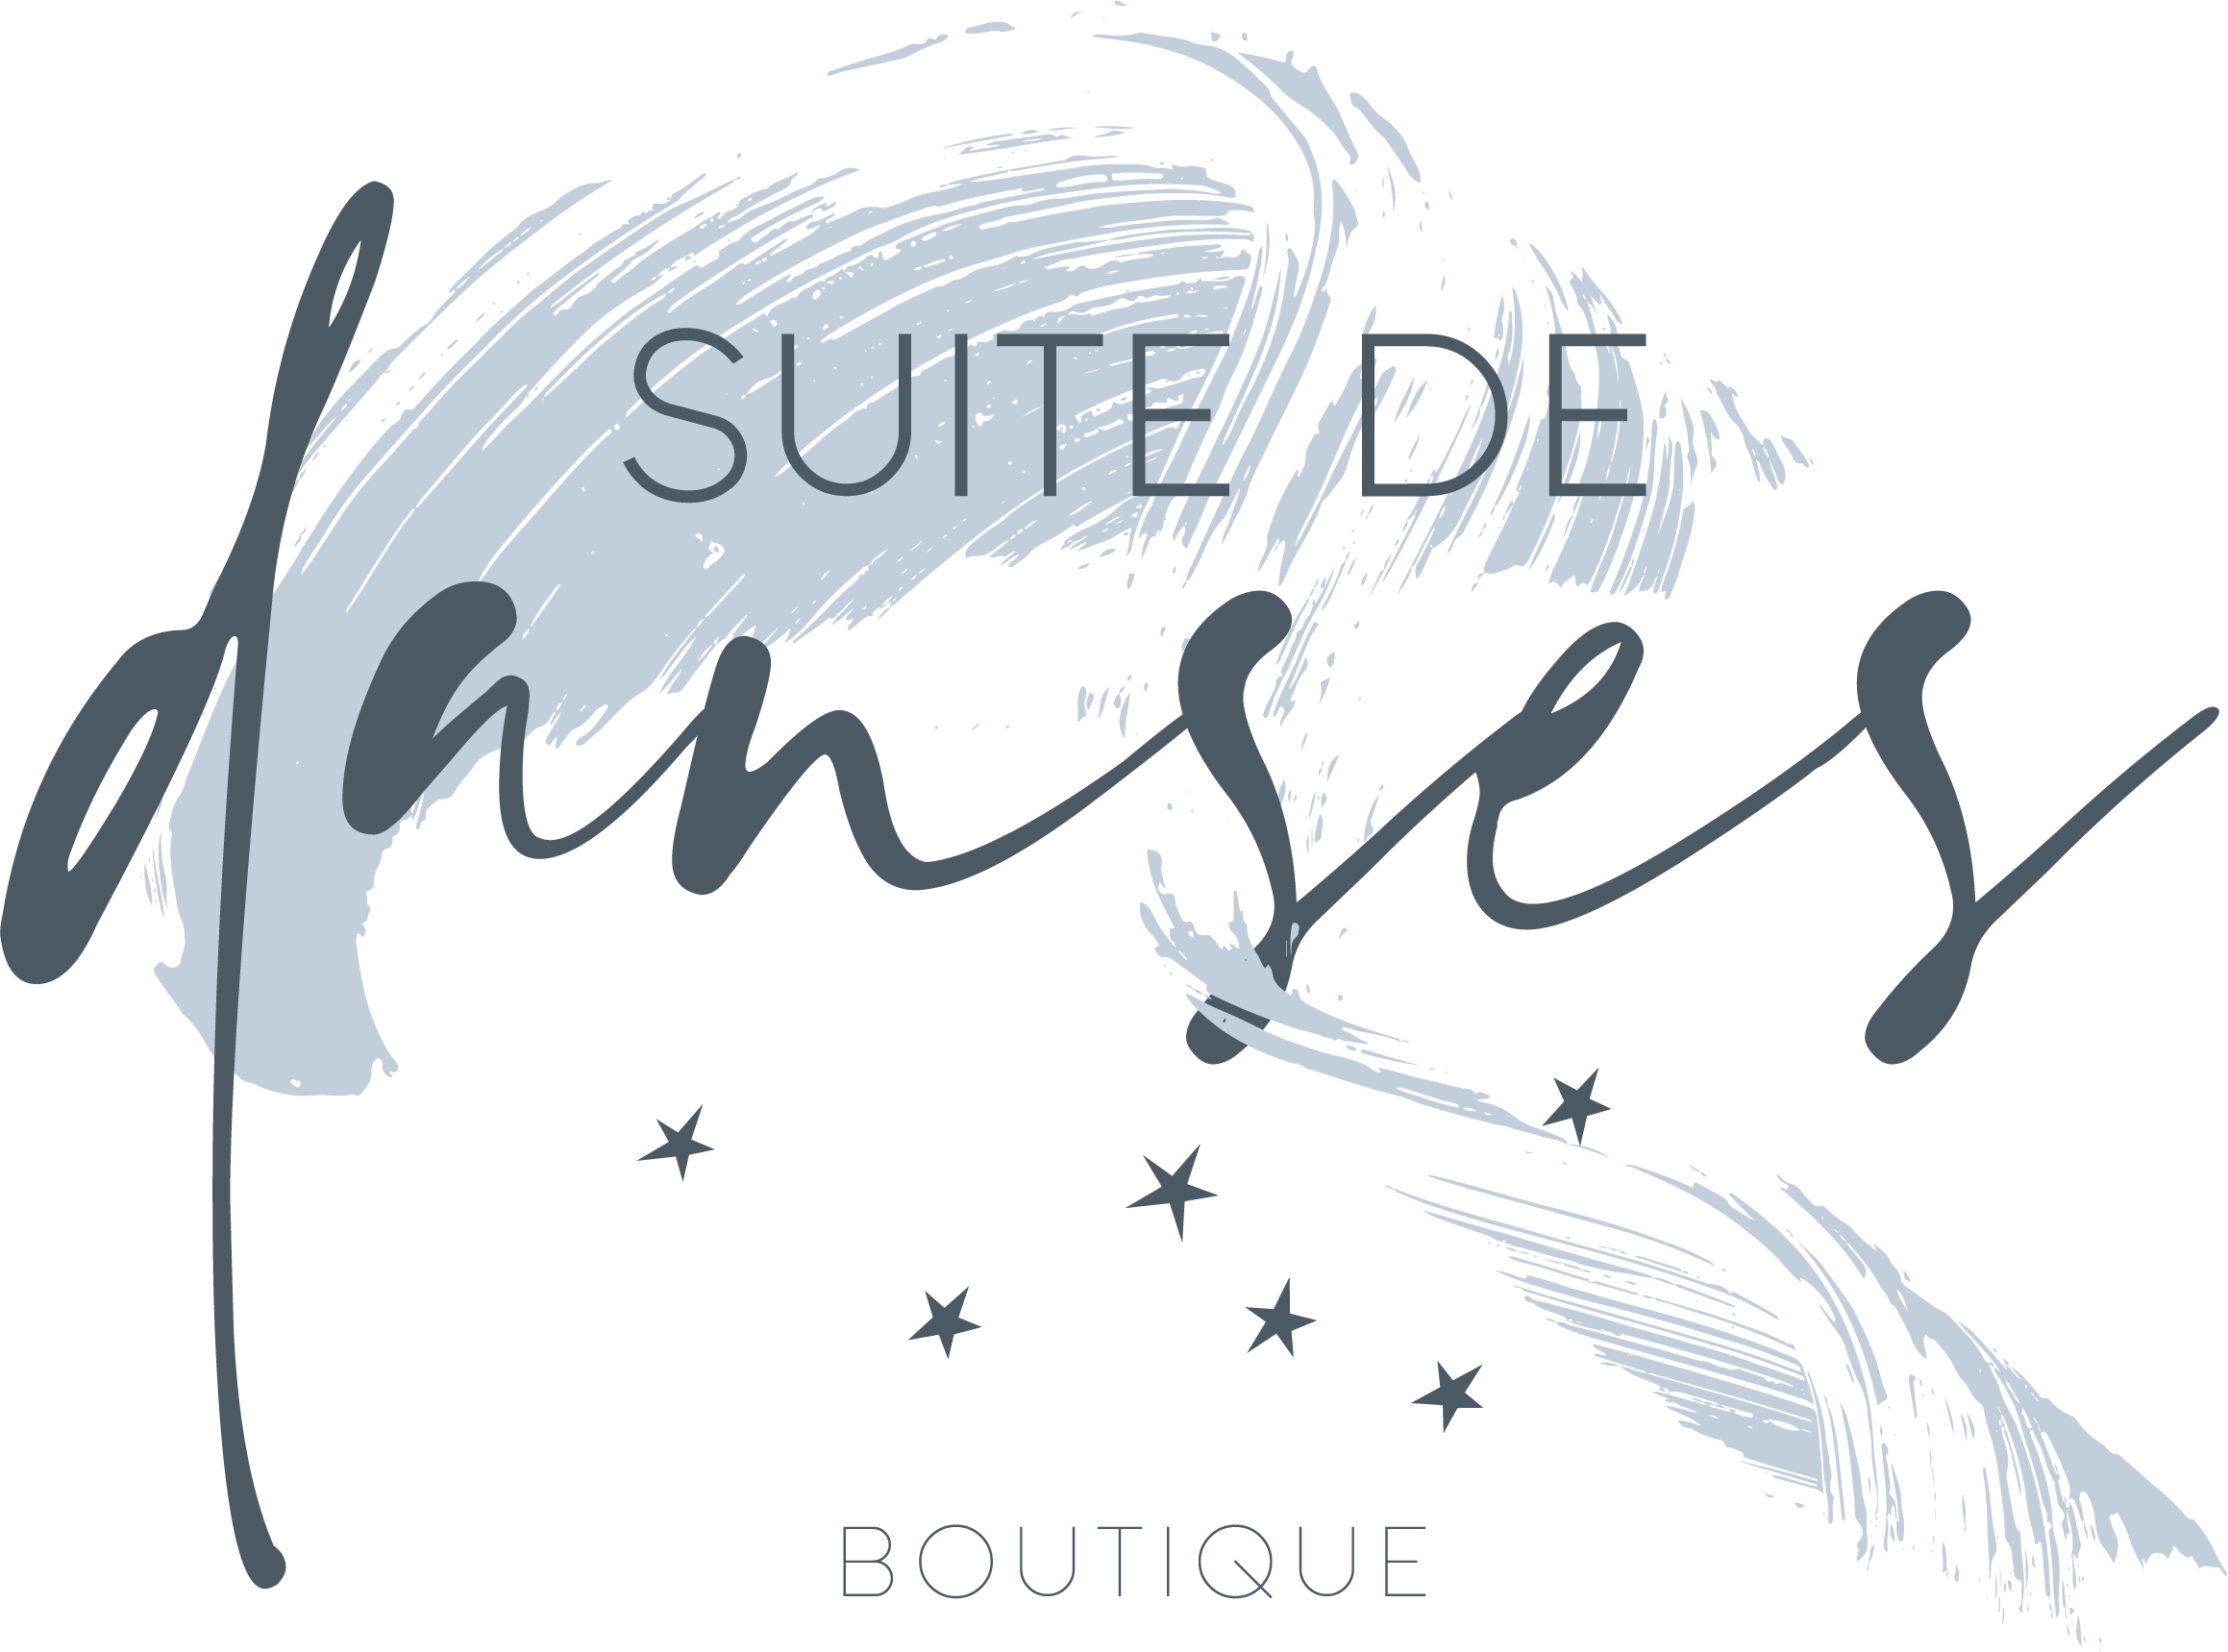 Suite de Danses Boutique